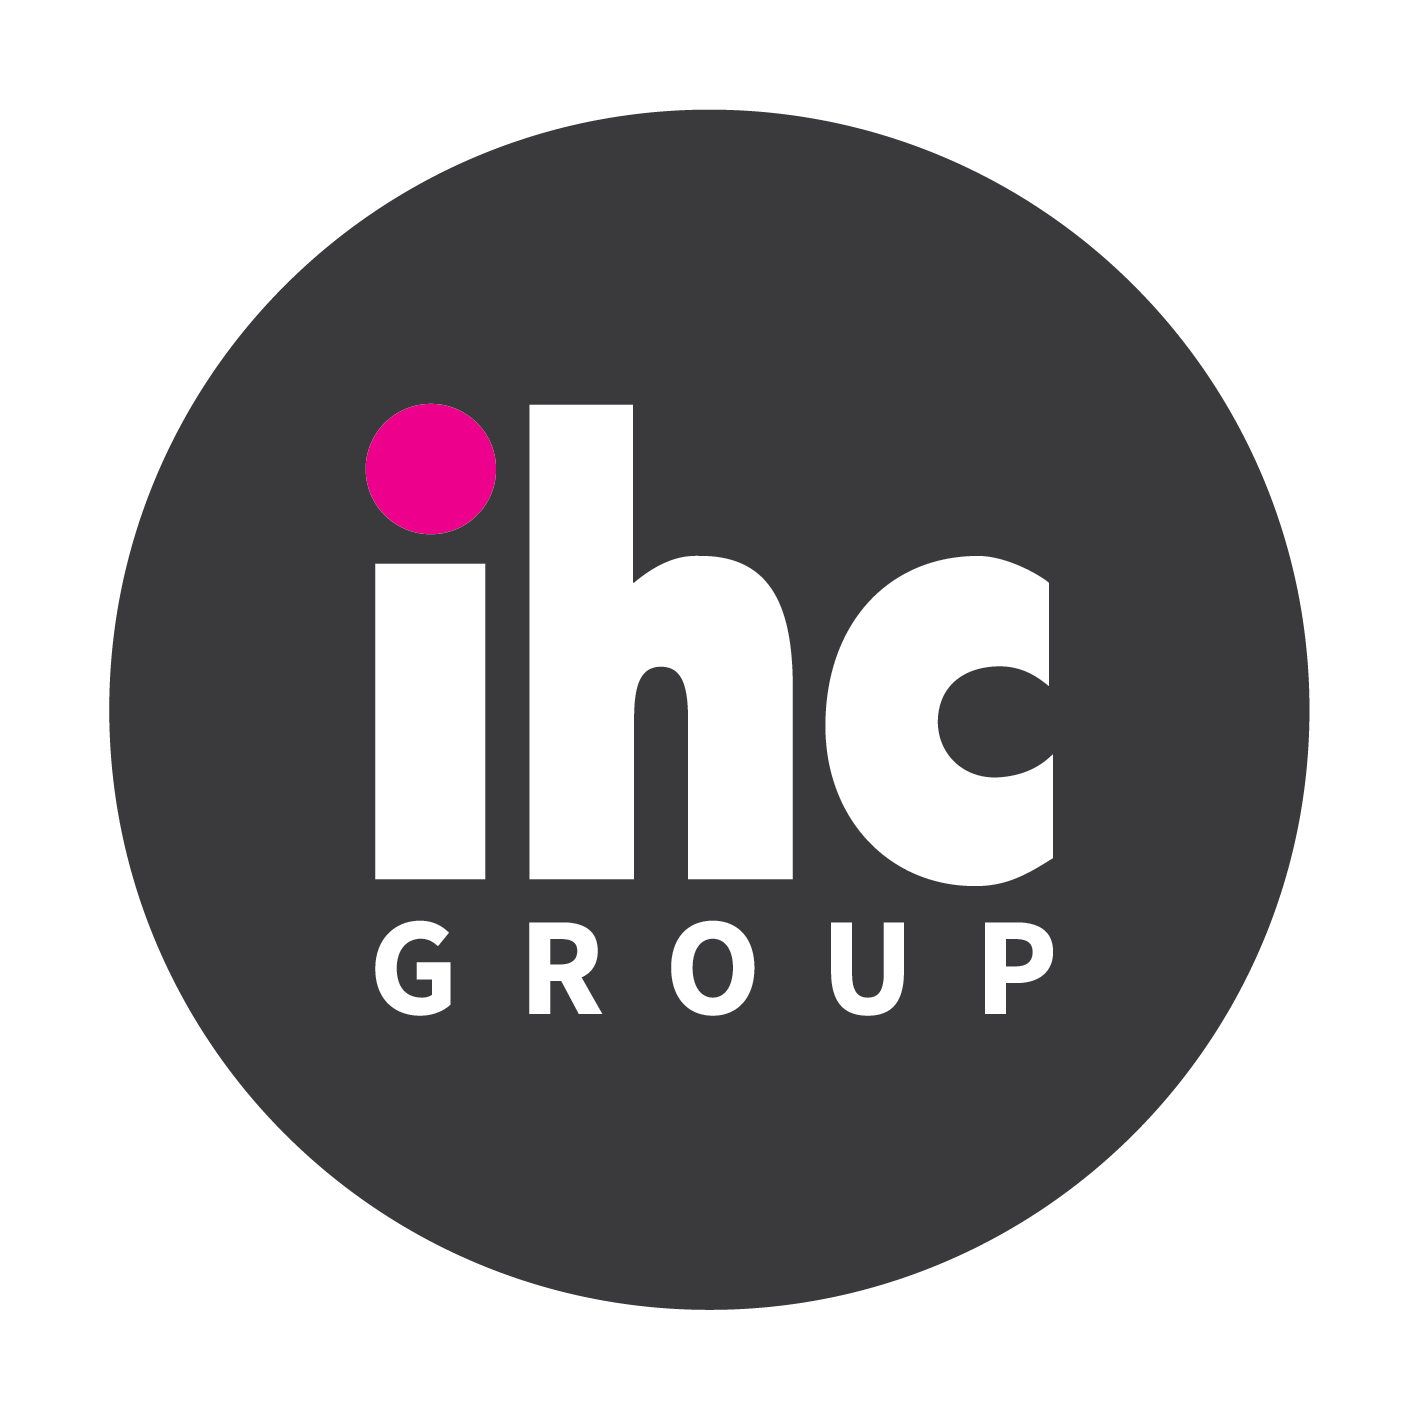 IHC Group logo